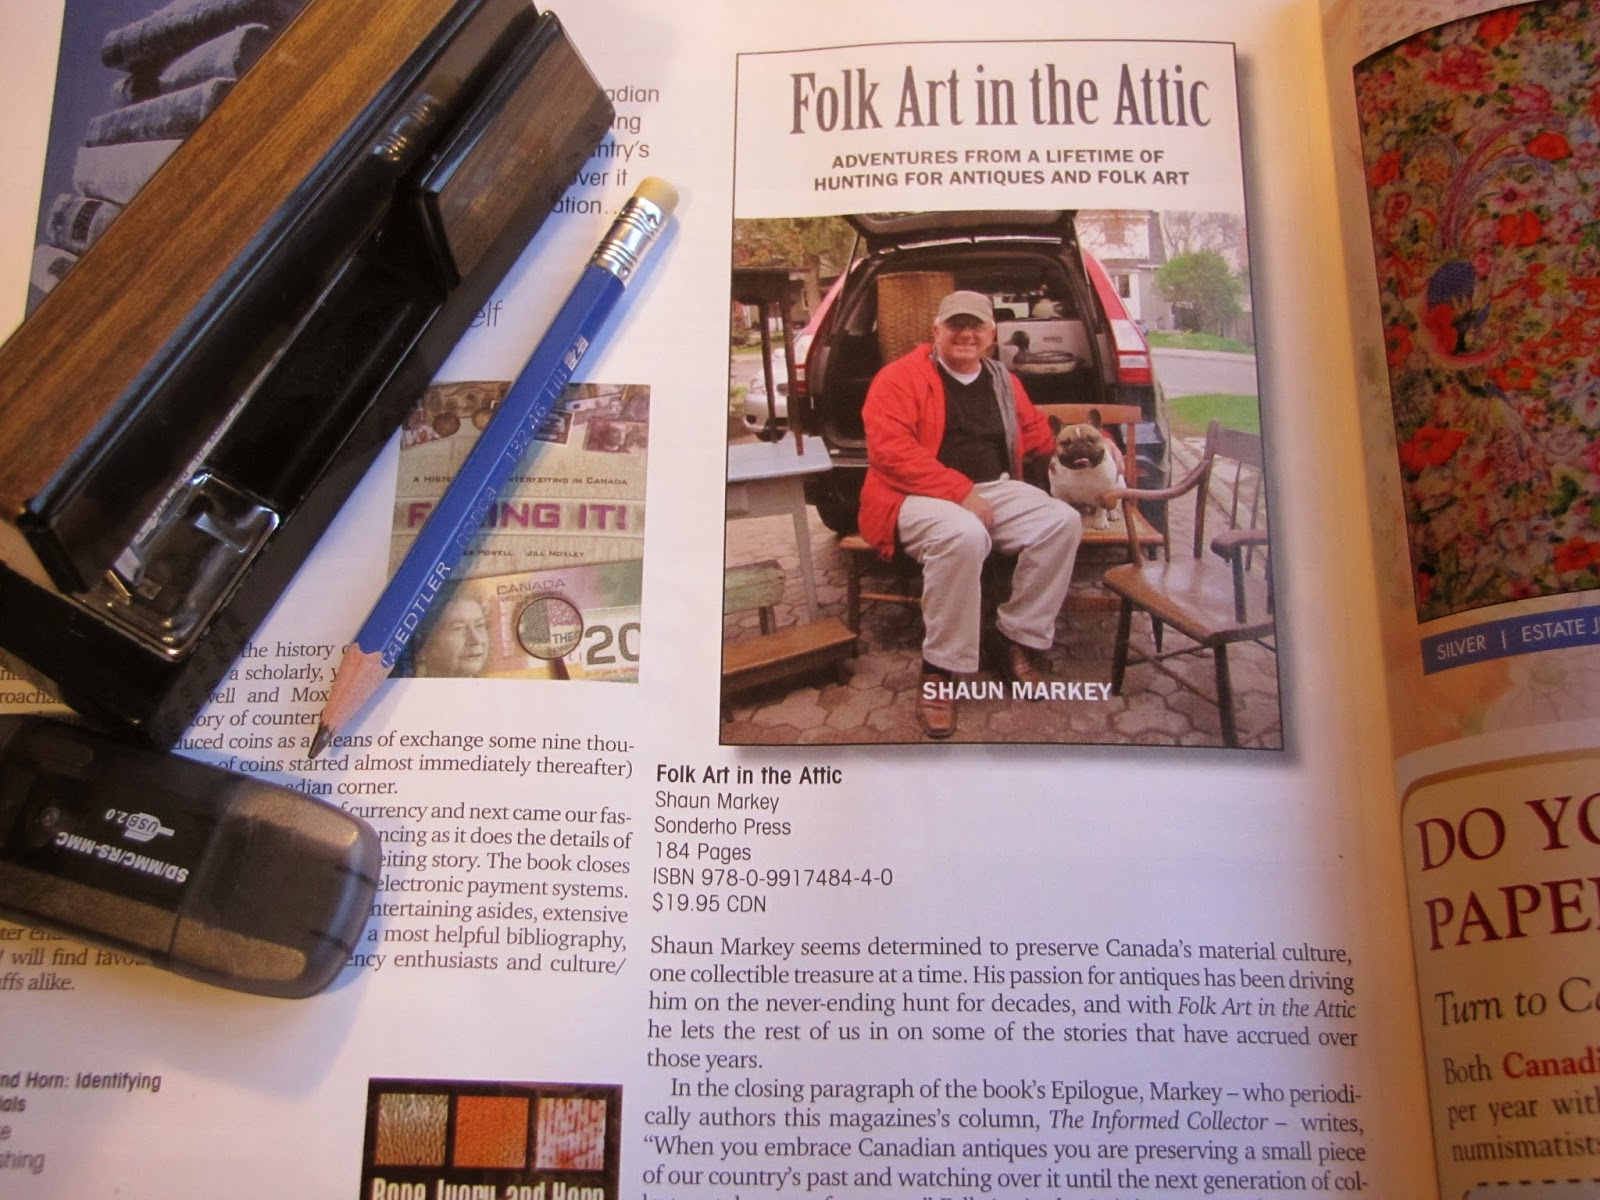 Folk Art in the Attic Canadian Antiques u0026 Vintage Magazine Features Folk Art in the Attic & Folk Art in the Attic: Canadian Antiques u0026 Vintage Magazine Features ...